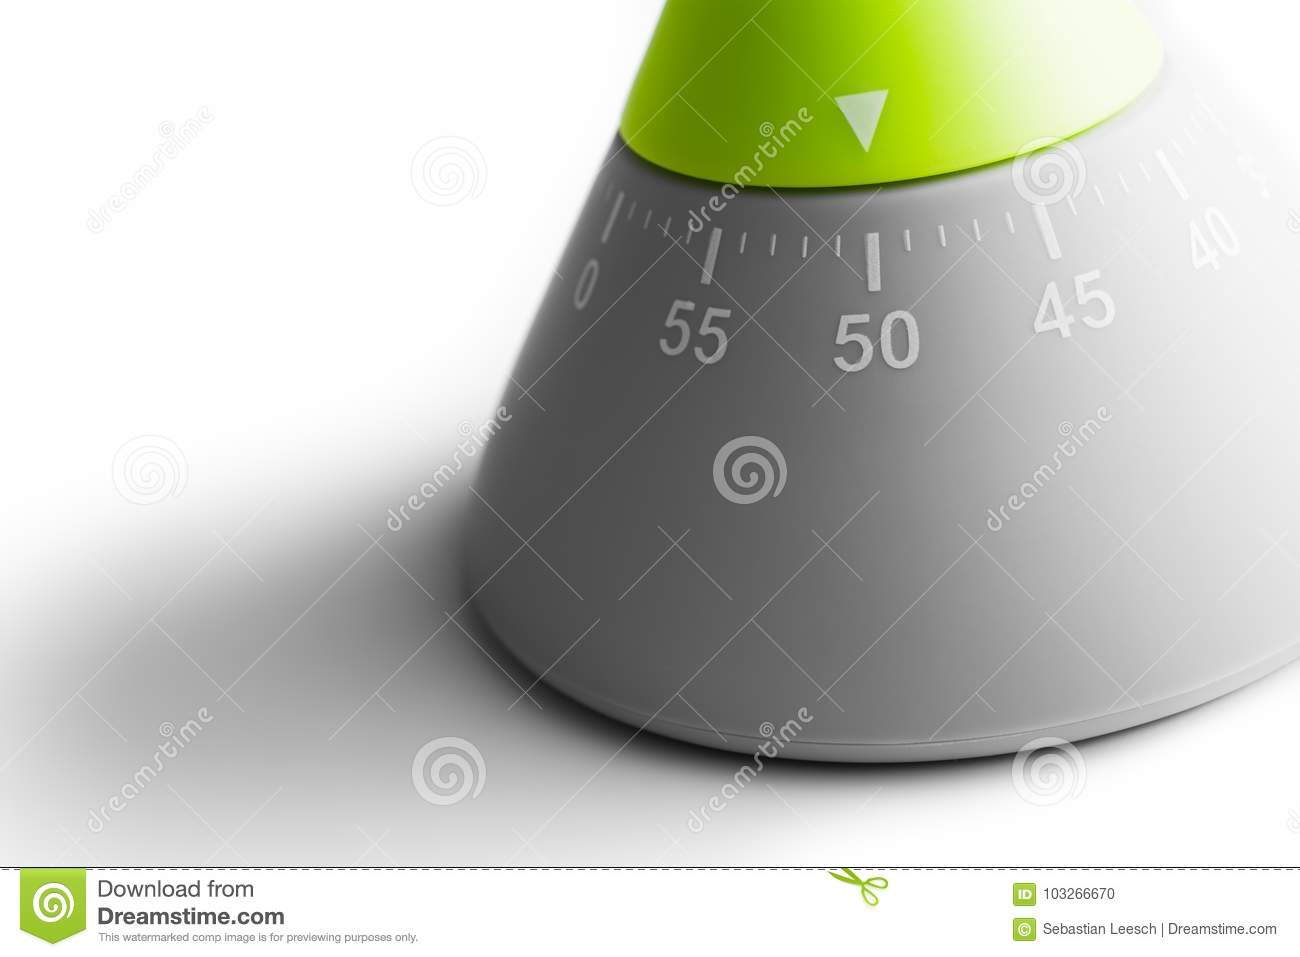 50 Minutes - Macro Of An Analog Kitchen Egg Timer